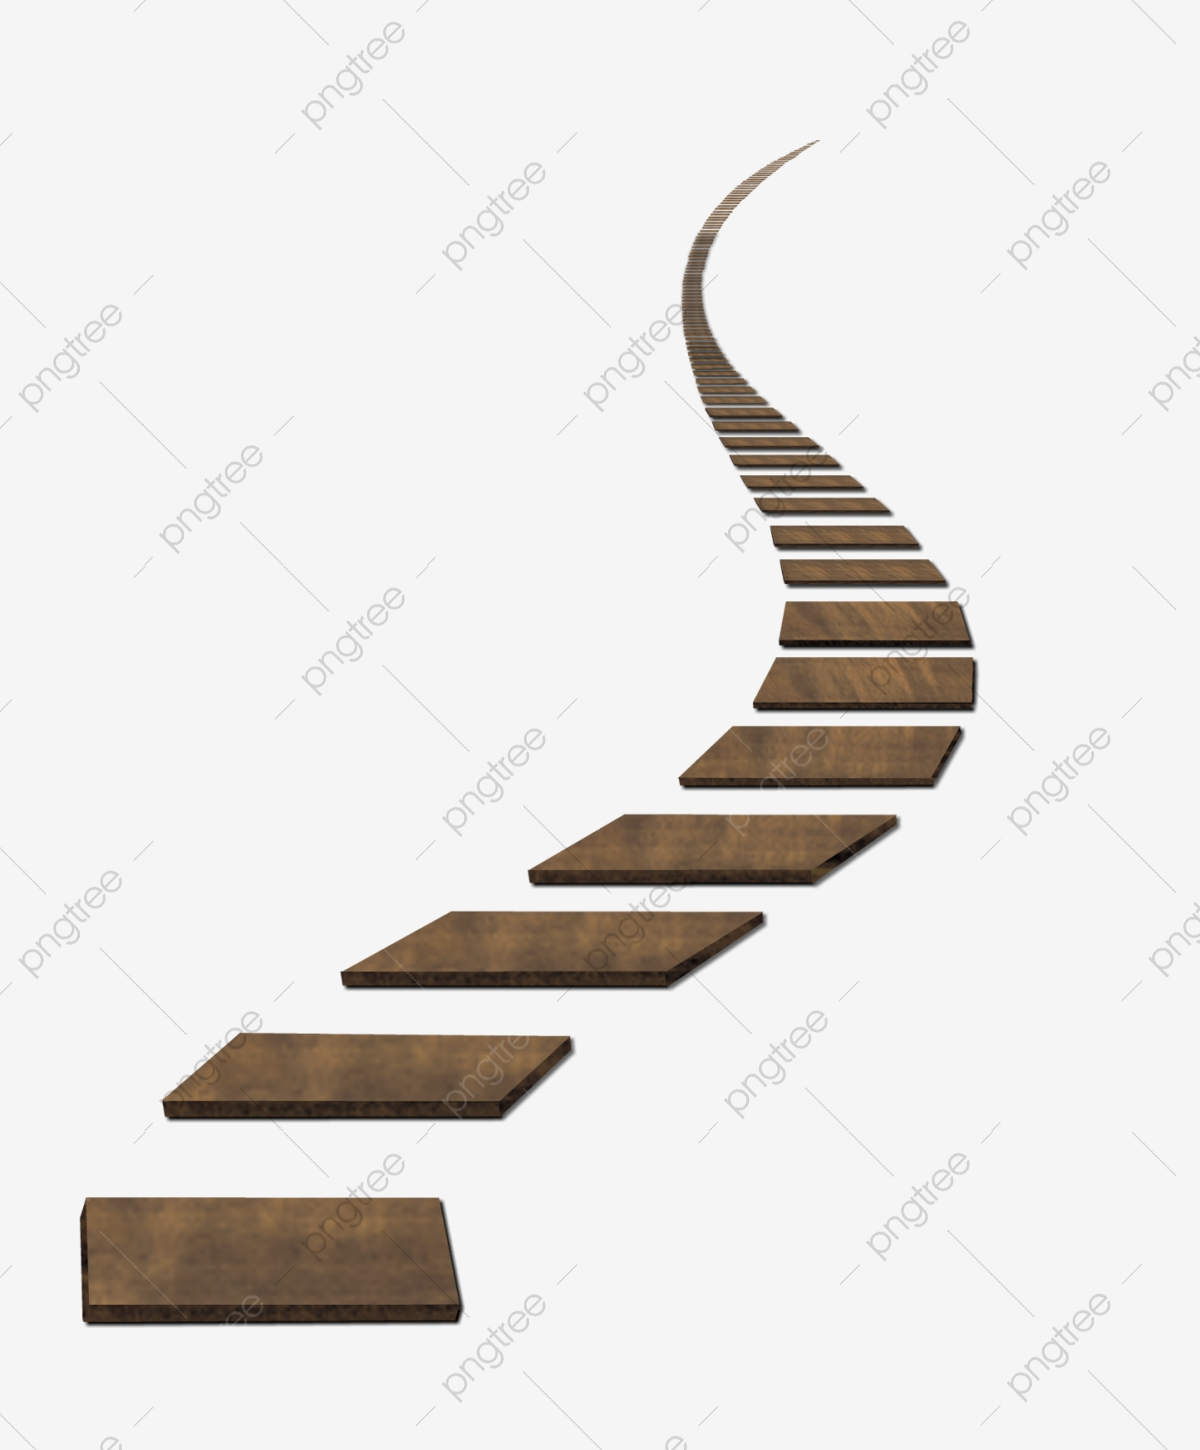 Ladder Stairs, Ladder Clipart, Ladder, Stone PNG Transparent Image.